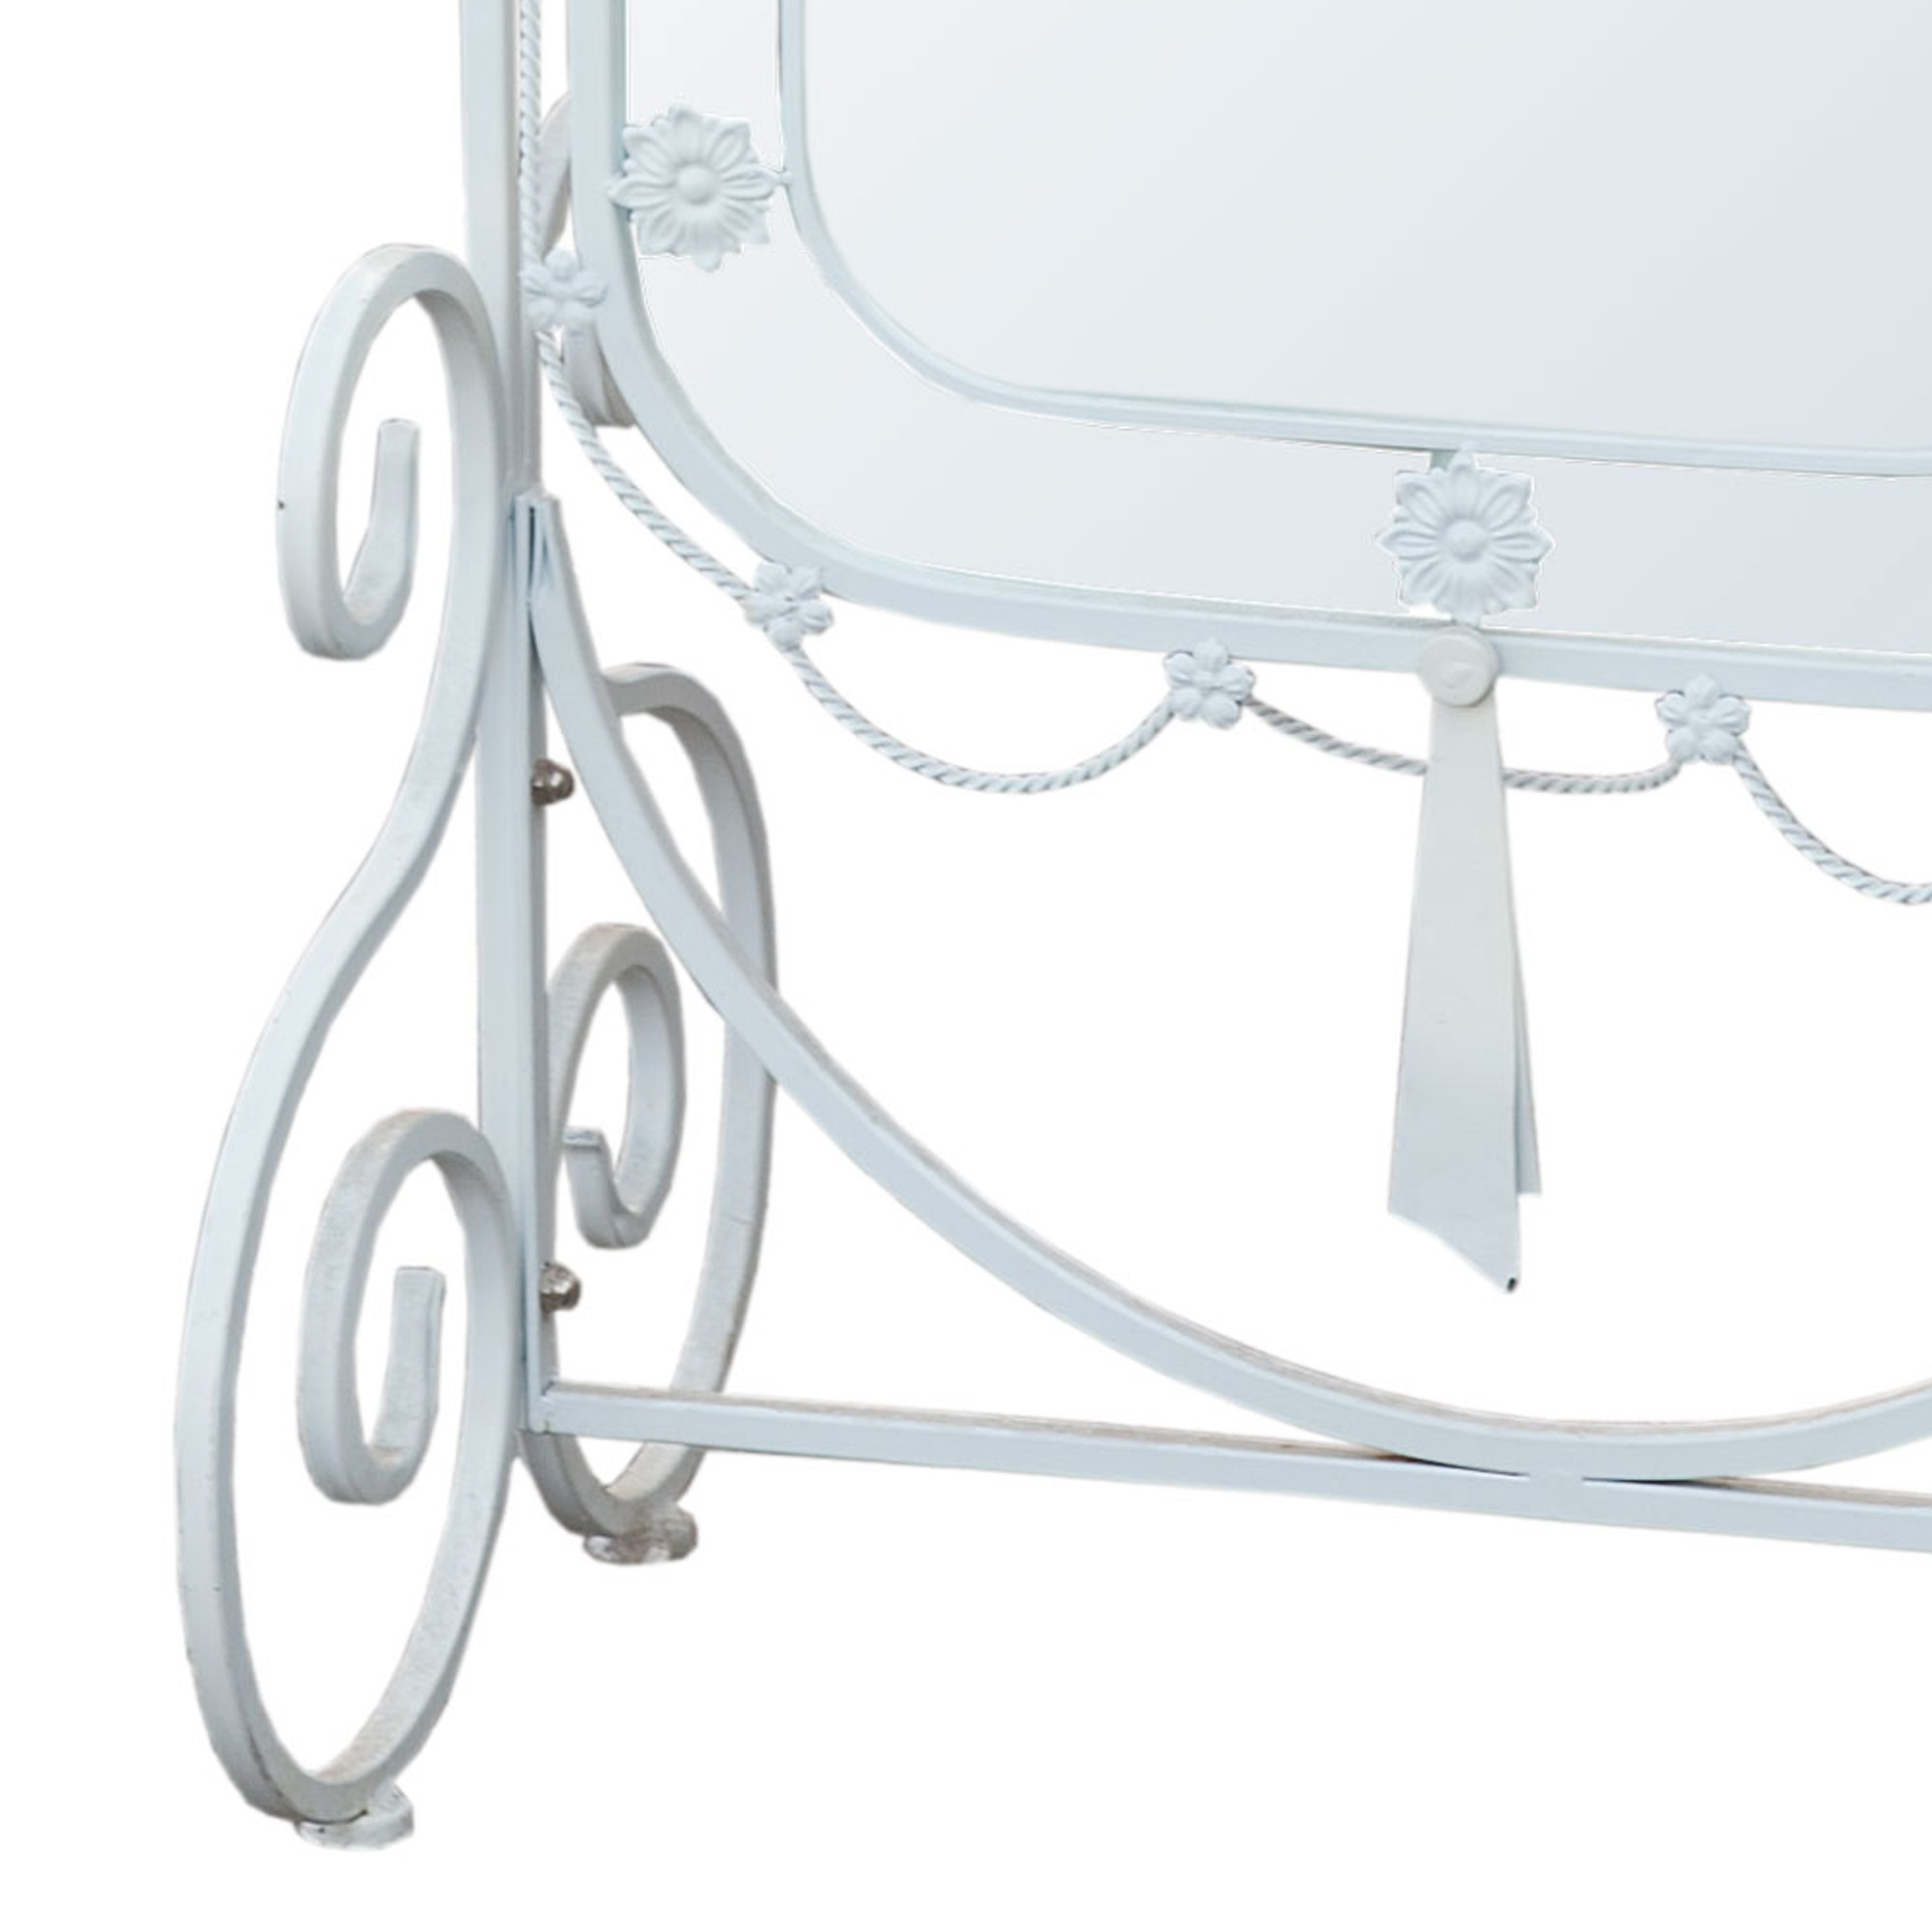 Iron Cheval Full Length Mirror - White